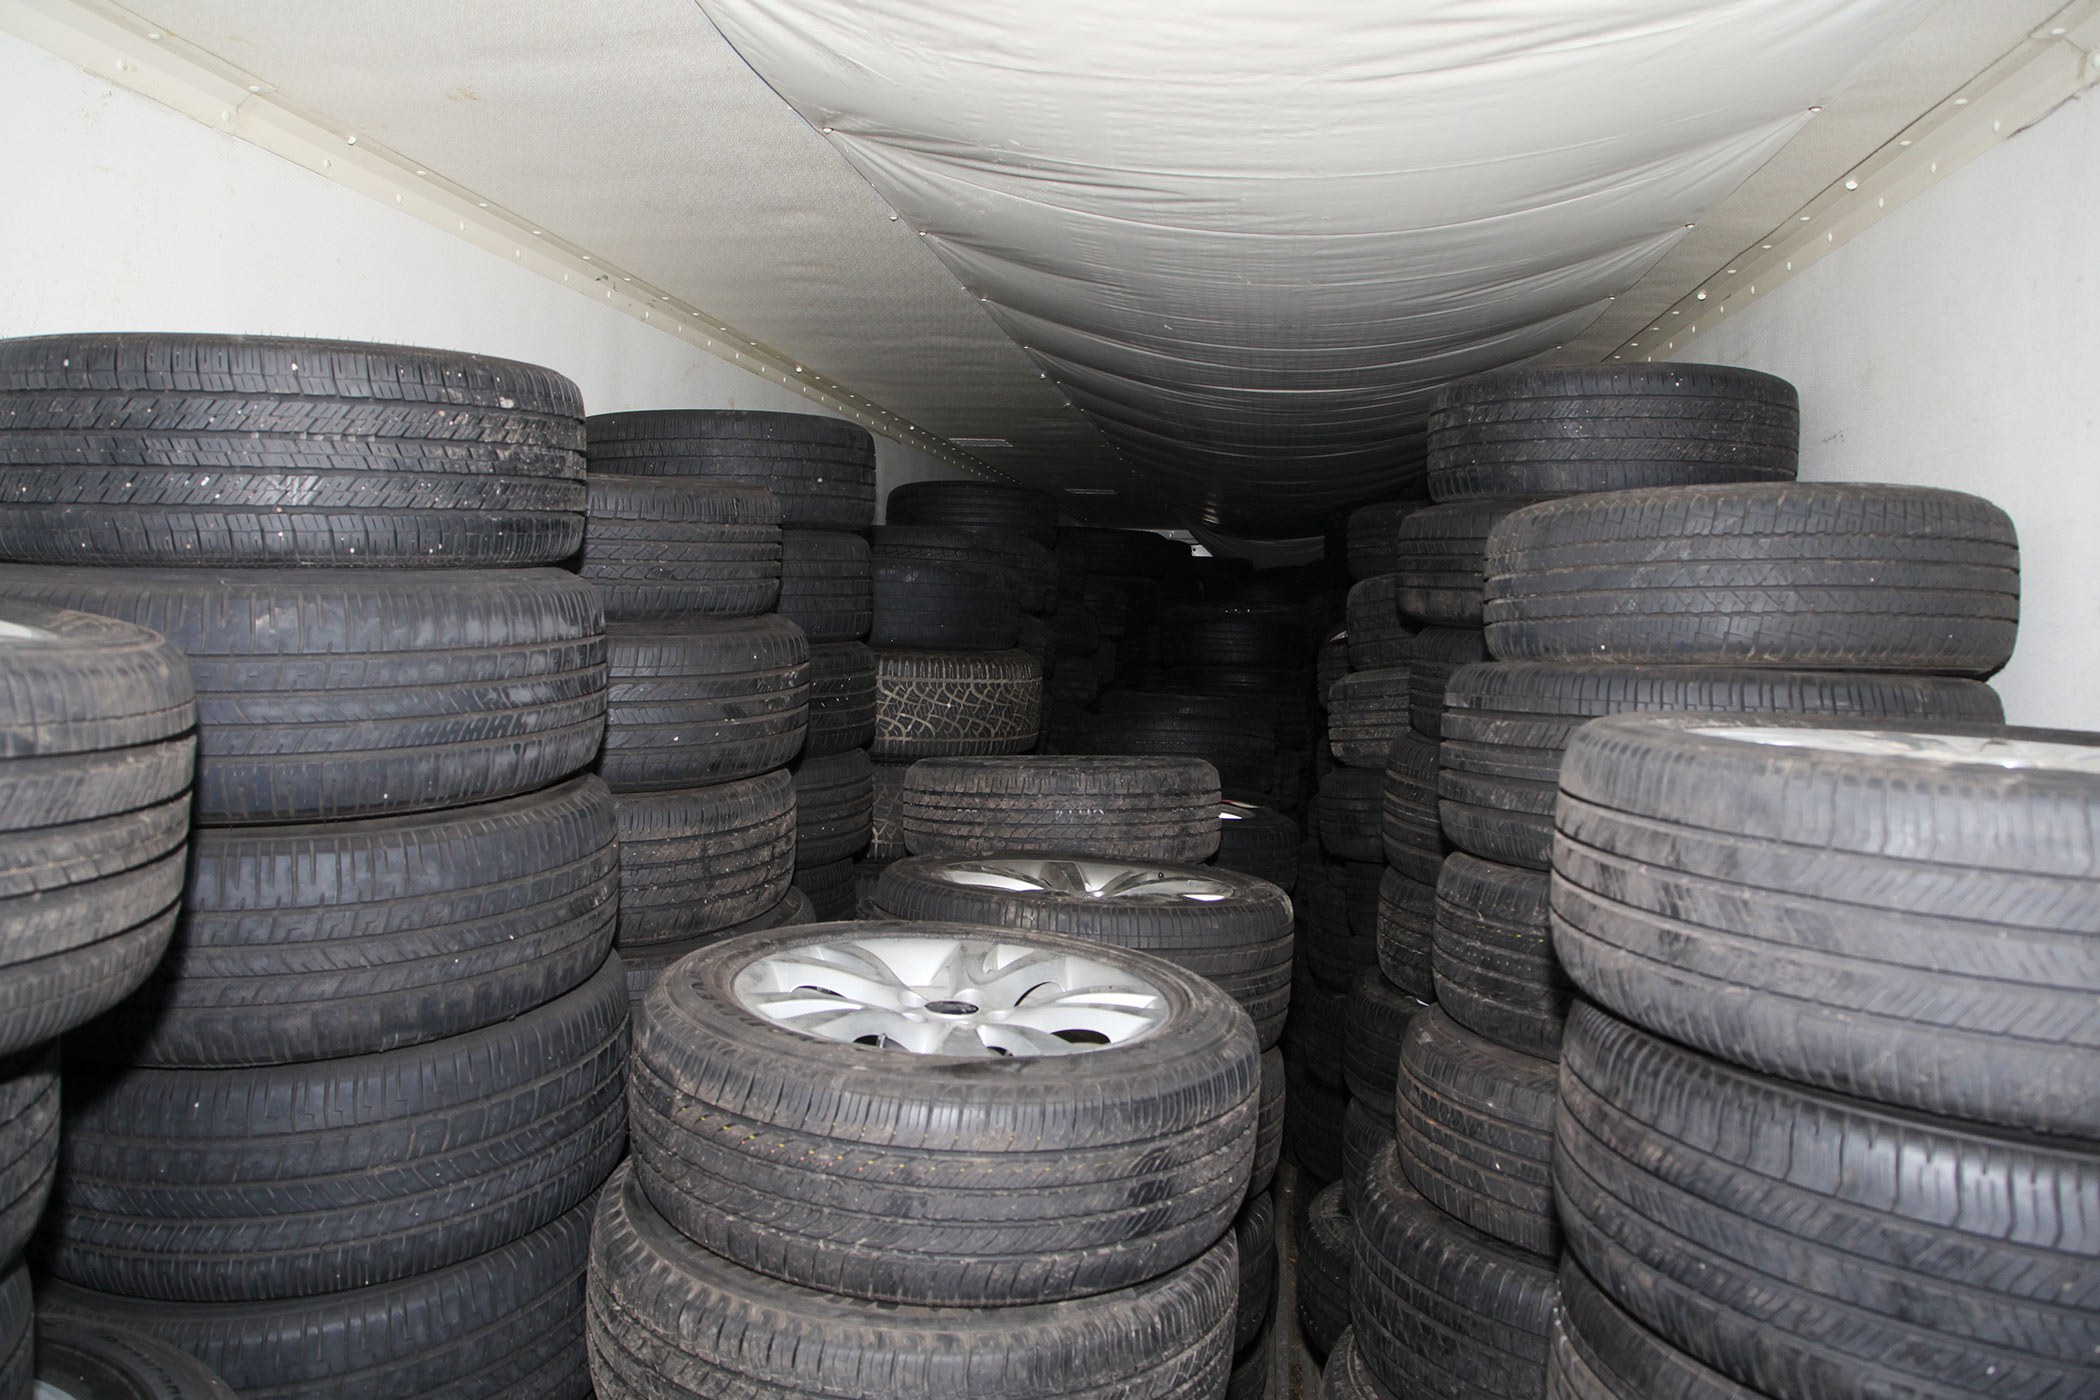 Some of the 240 tires and rims recovered by law enforcement following a lengthy theft investigation.